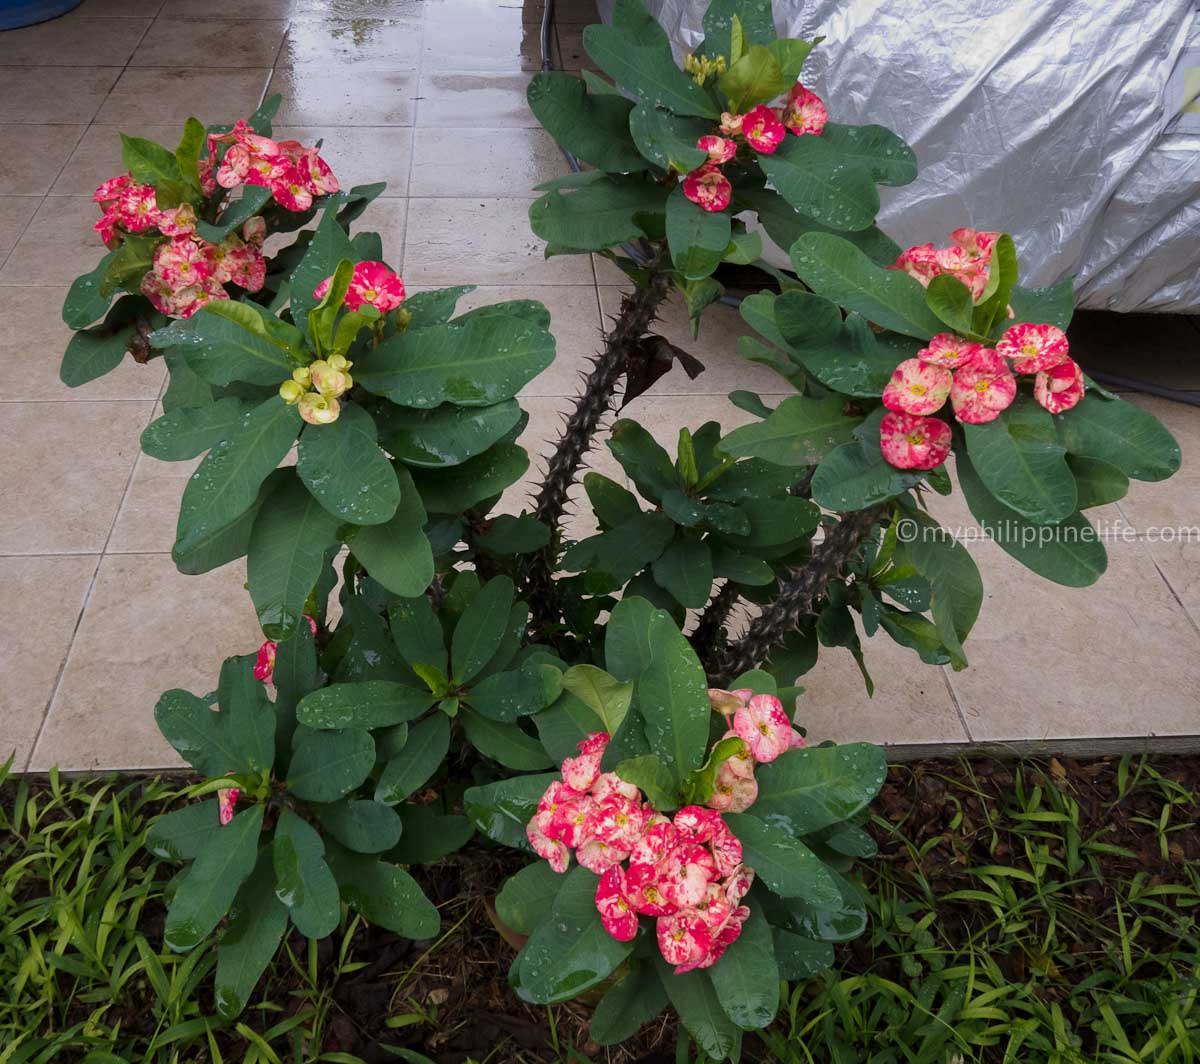 Crown of Thorns (Euuphorbia milli), native of Madagascar